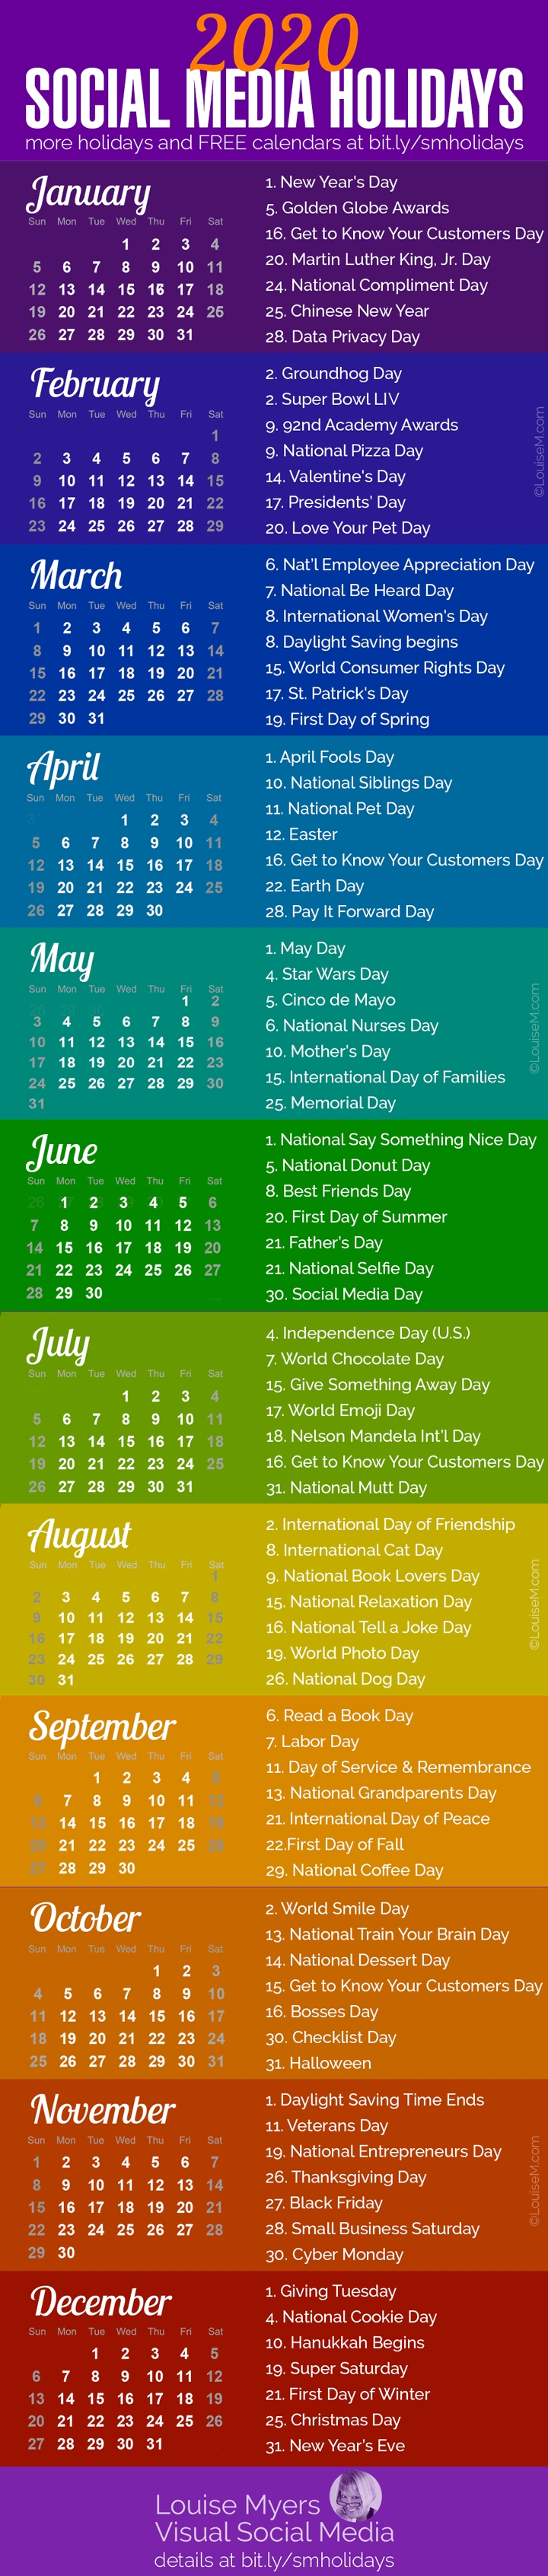 84 Social Media Holidays You Need In 2020: Indispensable! within Year Of Special Days 2020